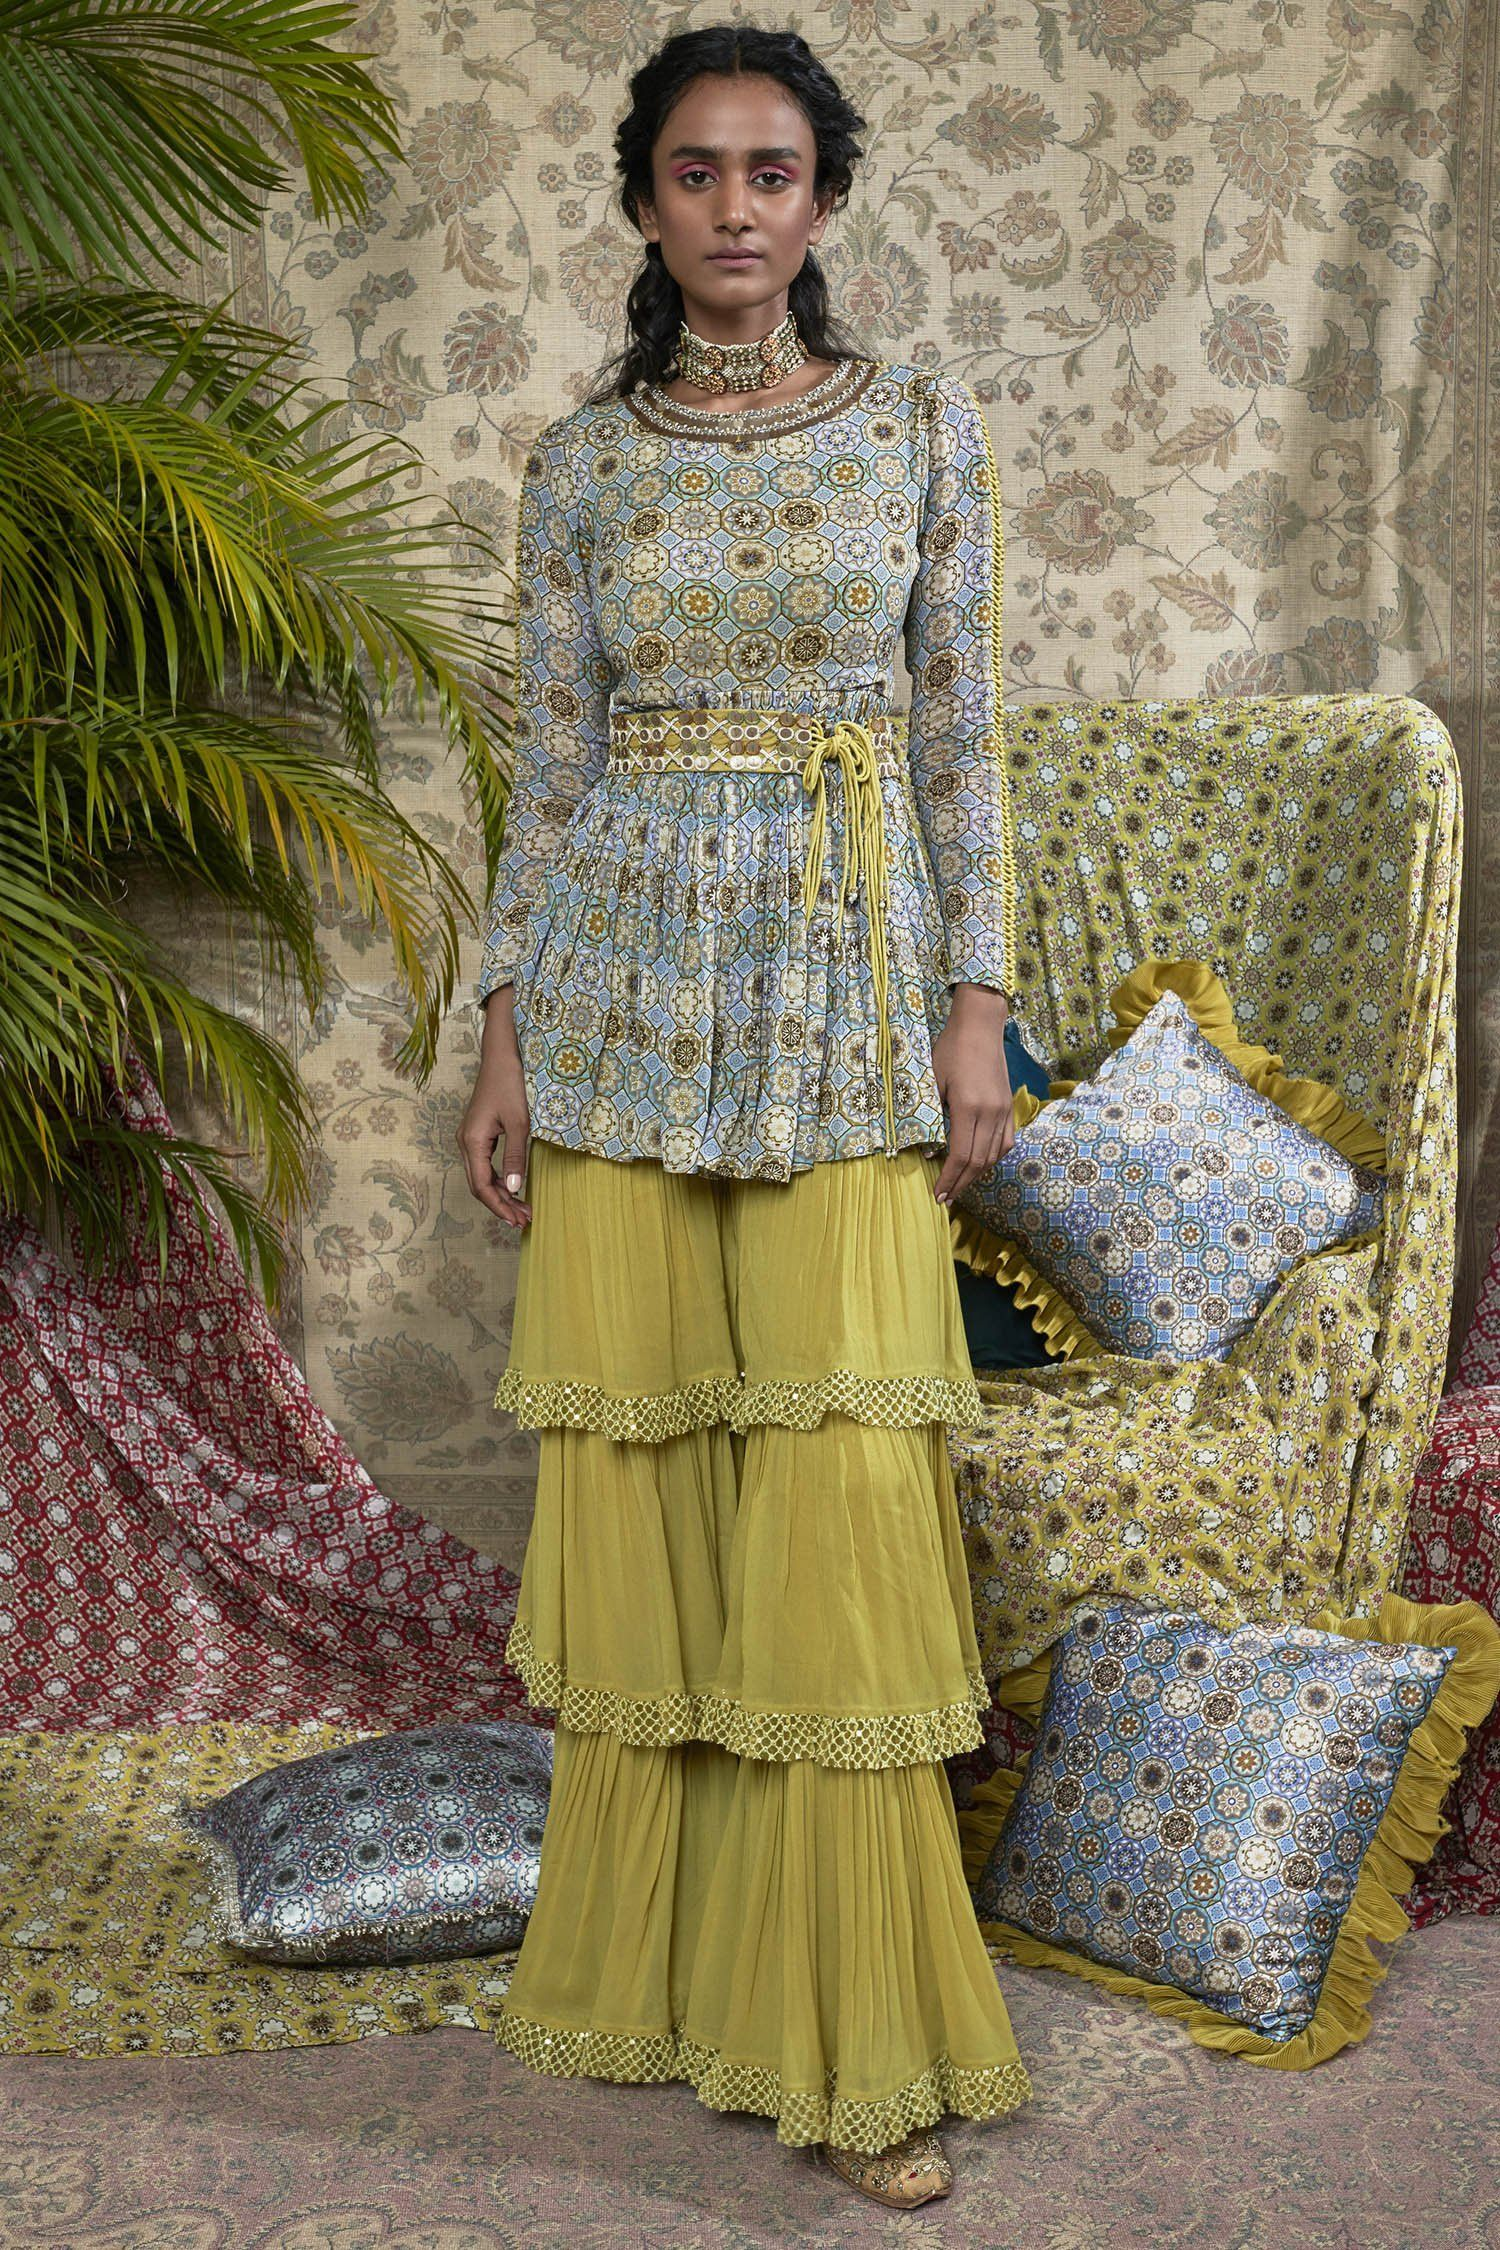 Buy Printed peplum kurta sharara set by Ridhima Bhasin at Aza Fashions #shararadesigns